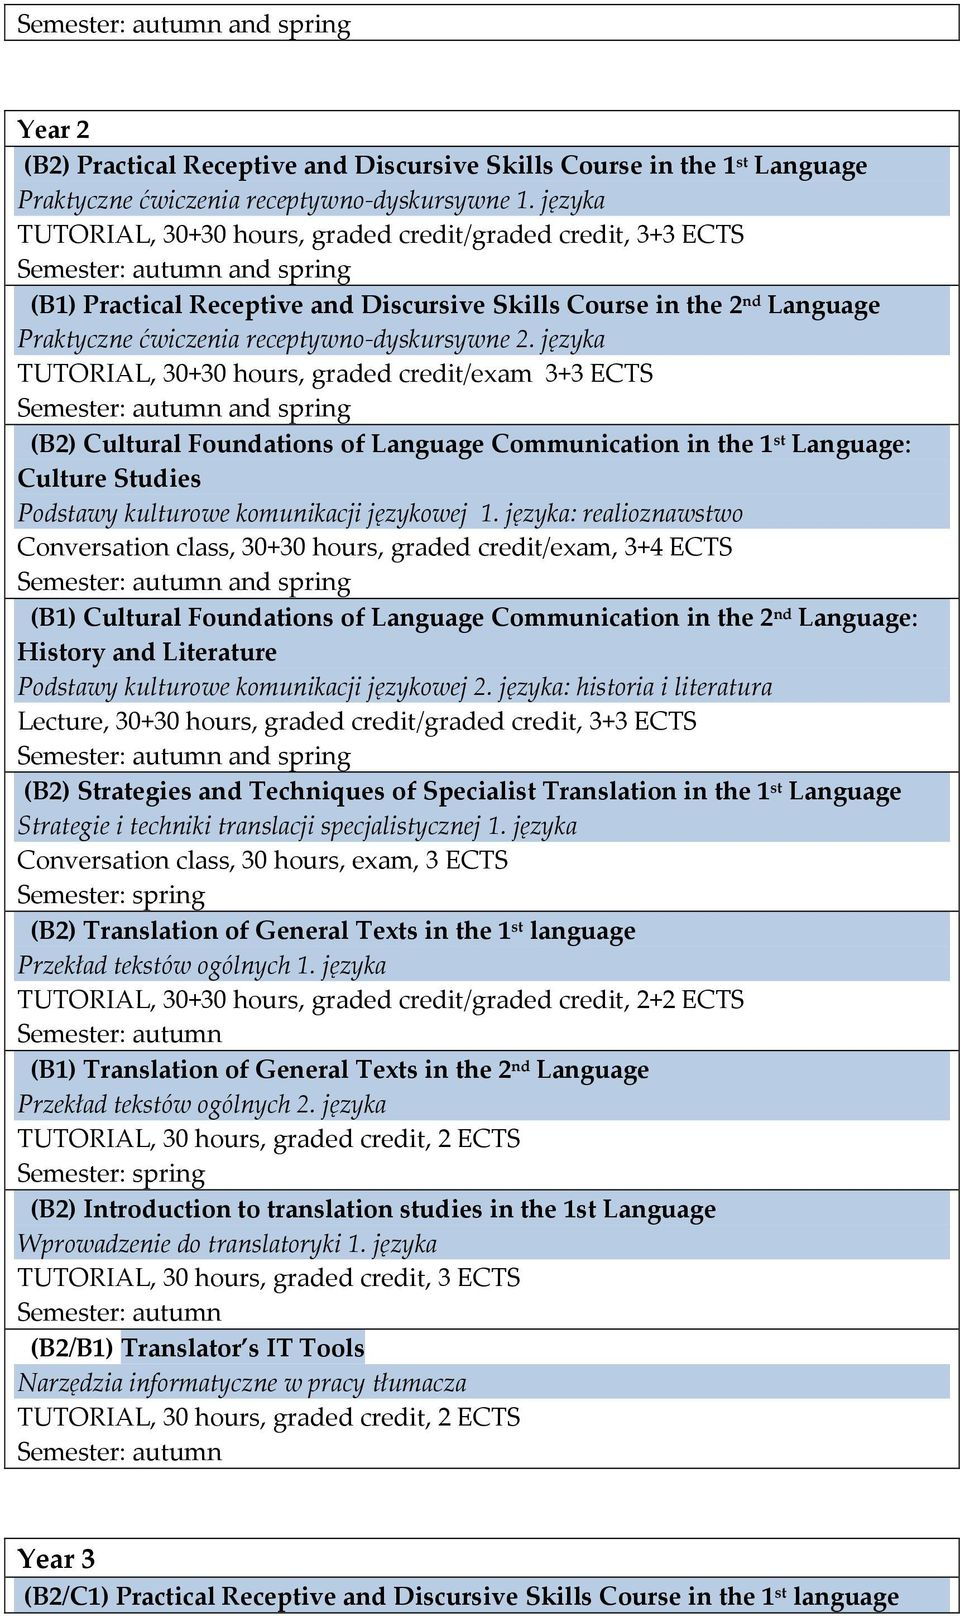 języka: realioznawstwo Conversation class, 30+30 hours, graded credit/exam, 3+4 ECTS (B1) Cultural Foundations of Language Communication in the 2 nd Language: History and Literature Podstawy